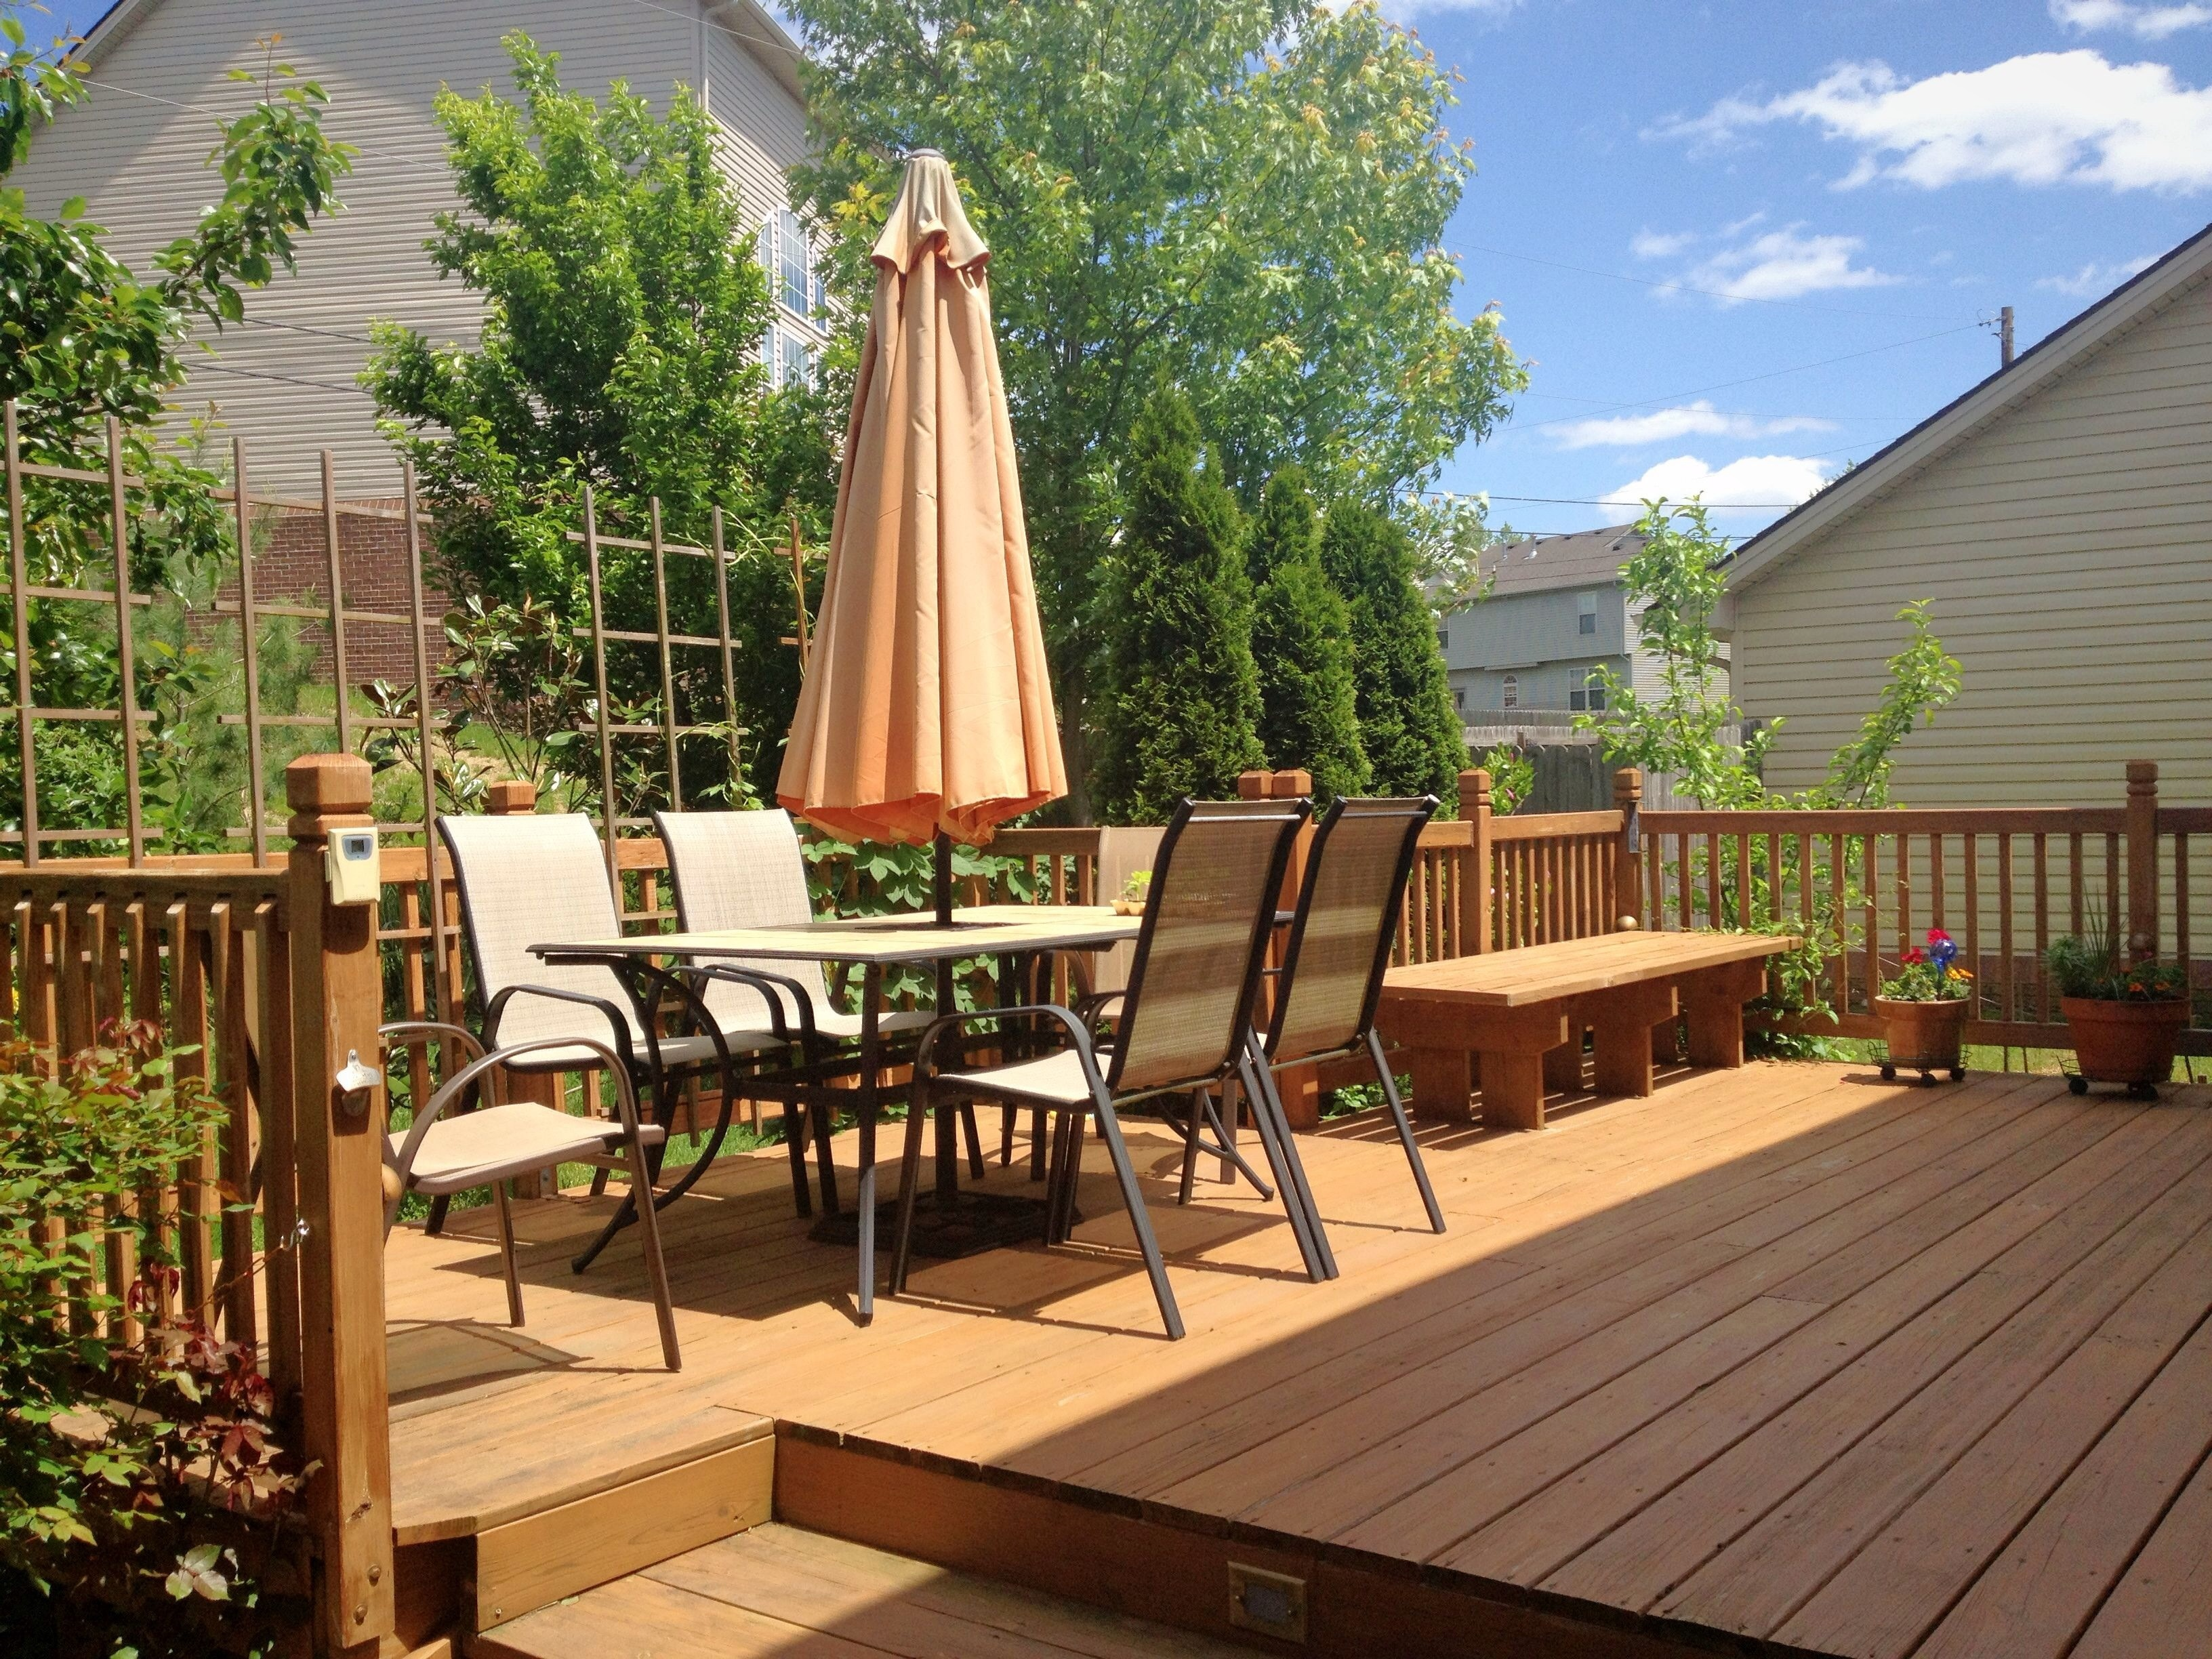 Aménagement Terrasse Bois Etage Custom Decks Vision Landscape Design And Build